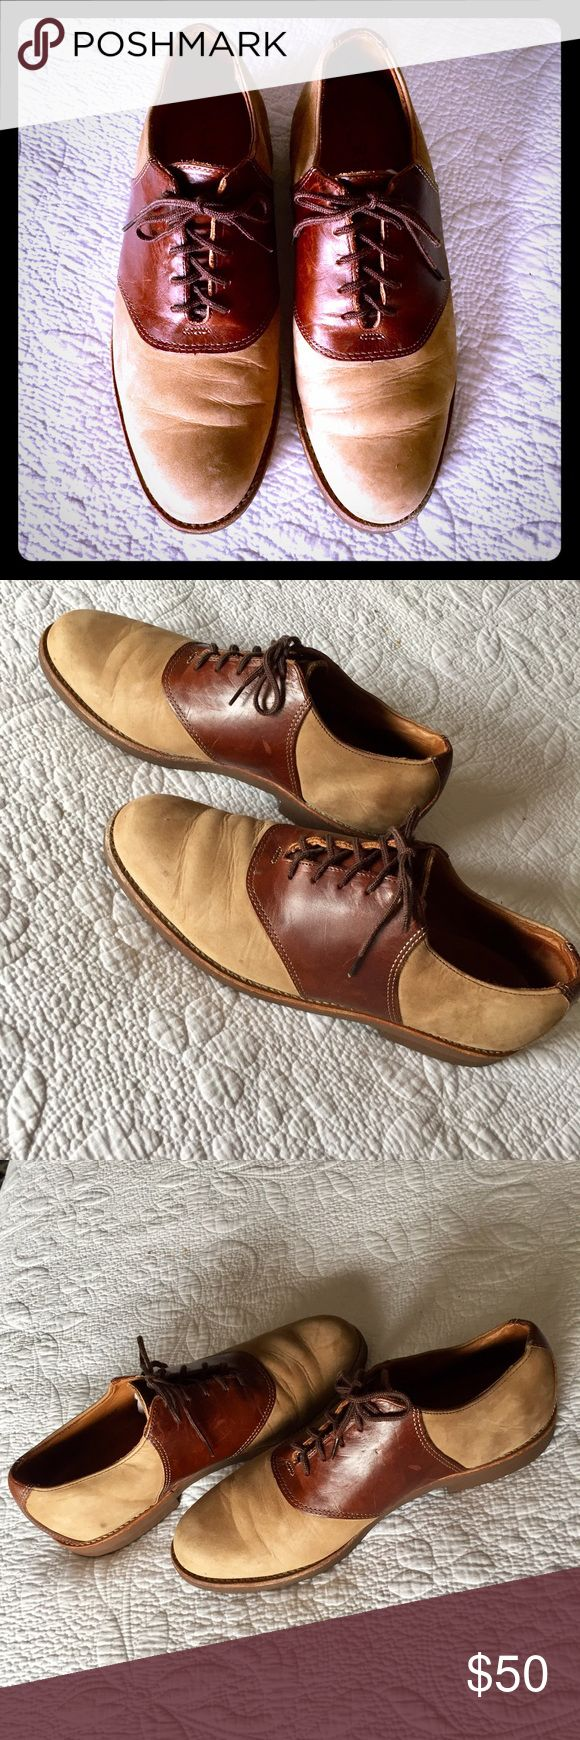 HP 4/8/17 VINTAGE J Crew Men's Saddle Shoes An absolutely beautiful pair of 80's & 90's vintage saddle oxfords by JCrew.  Traditional saddle shoe featuring  two-tone colors of saddle brown and tan suede with brown soles. A beautifully made classic with gorgeous leather that is perfectly stitched, perfectly cut and lined, stamped inside leather.  Excellent used condition with minor scratches on leather.  Please see pictures for detail.  Size 9.5 M. J. Crew Shoes Oxfords & Derbys